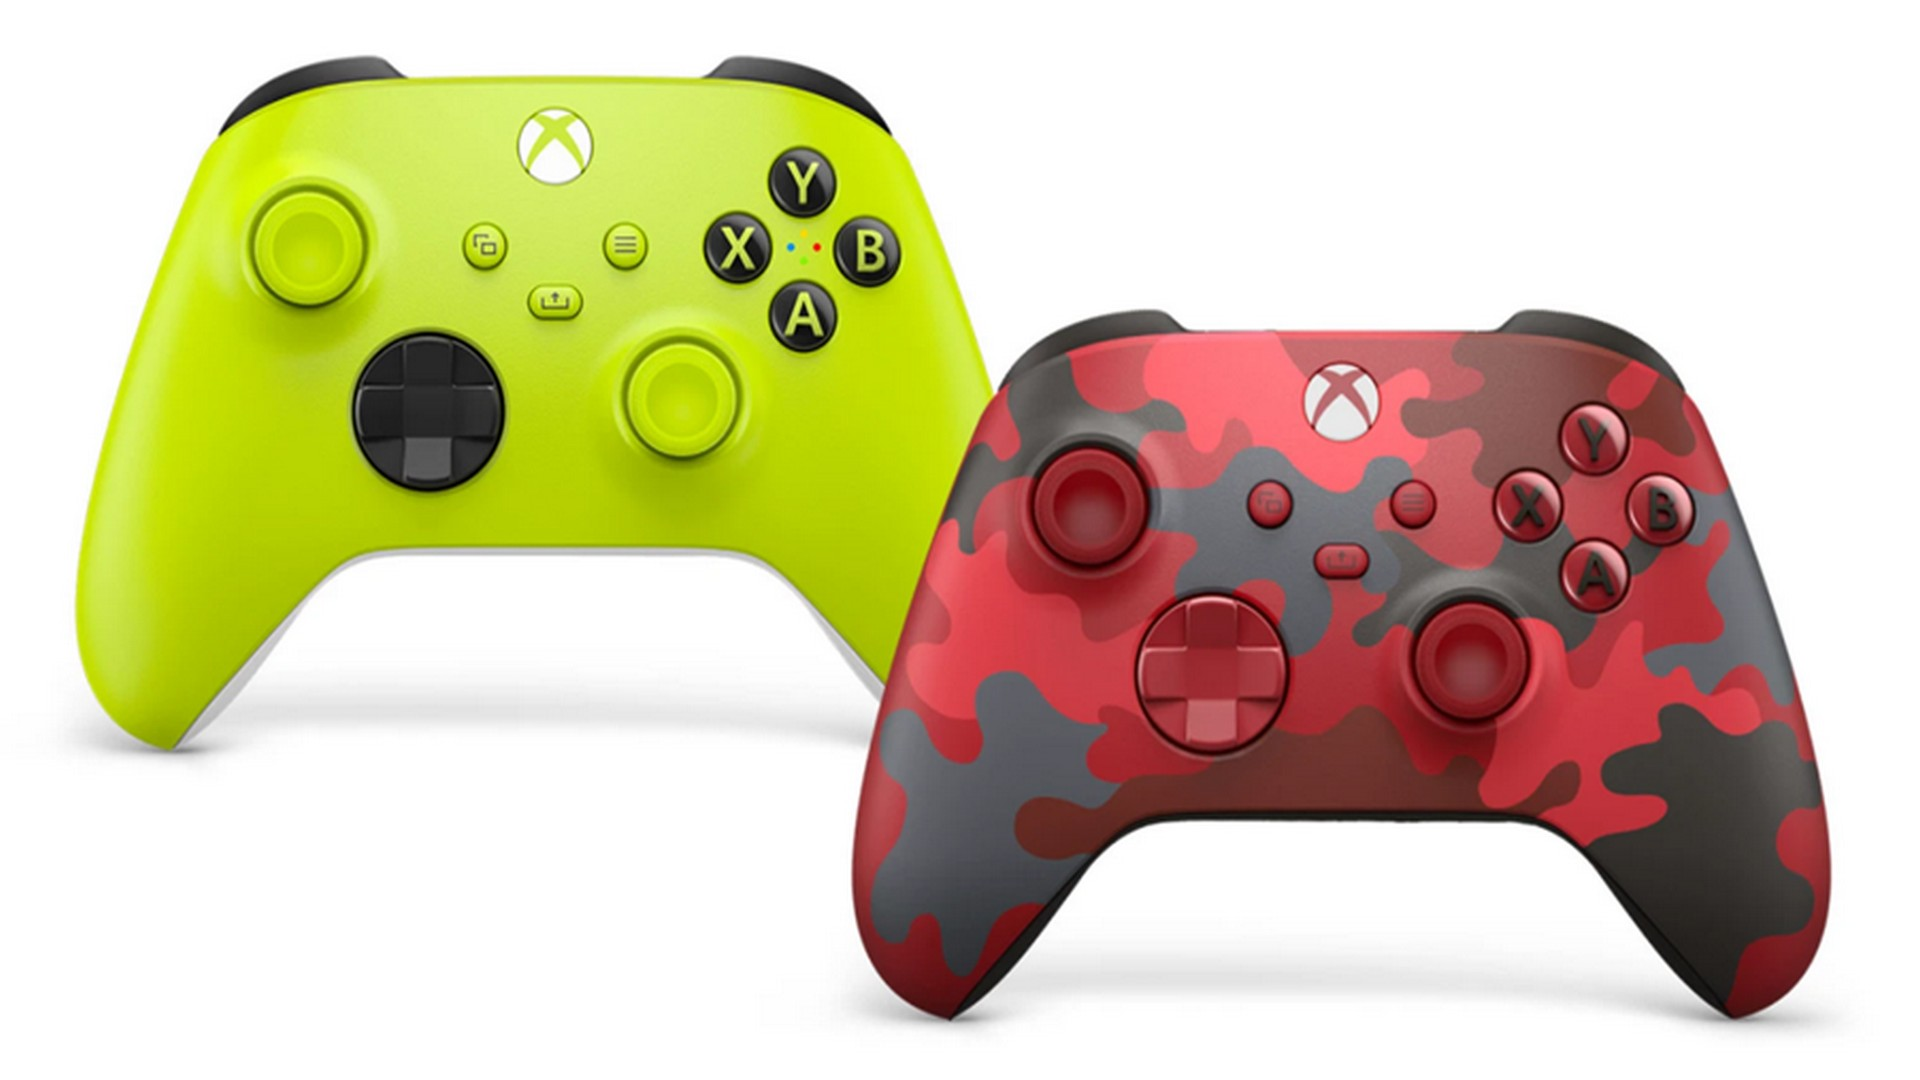 Make A Statement With The New Xbox Wireless Controllers: Electric Volt & Daystrike Camo Special Edition